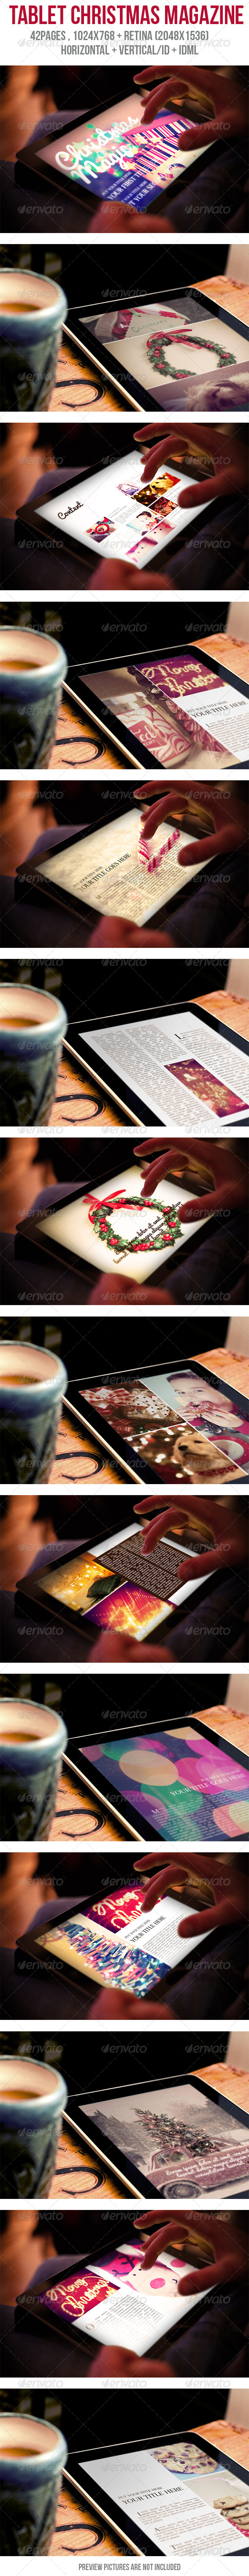 GraphicRiver Tablet Christmas Magazine 6000367